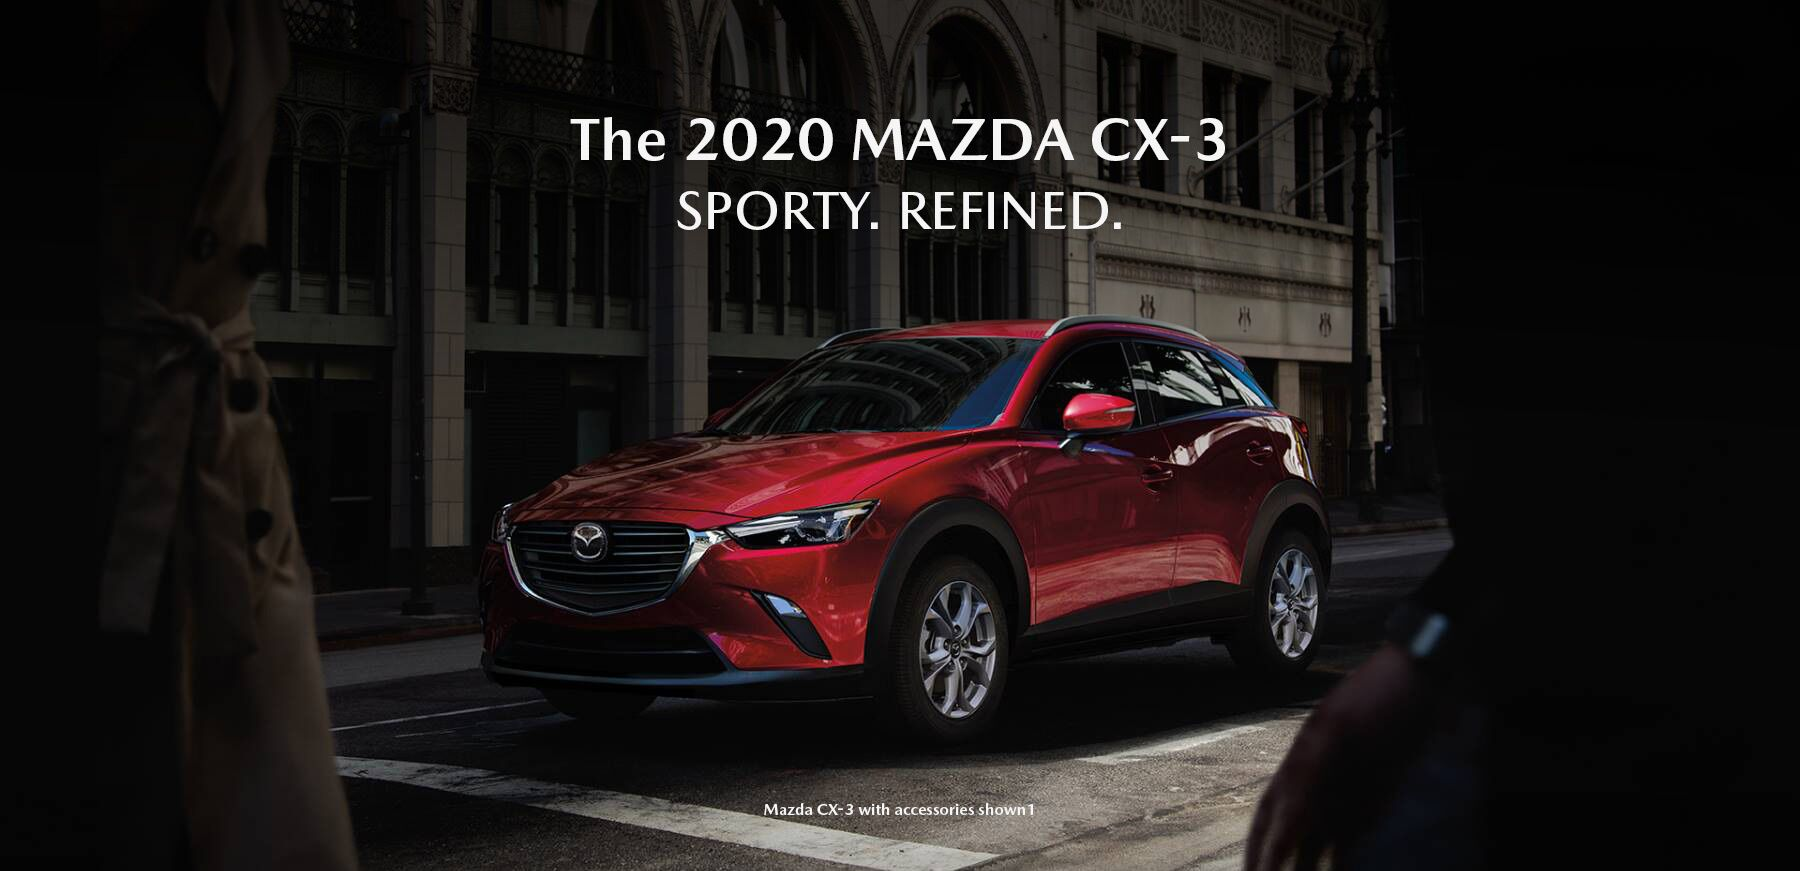 The new Mazda CX-3